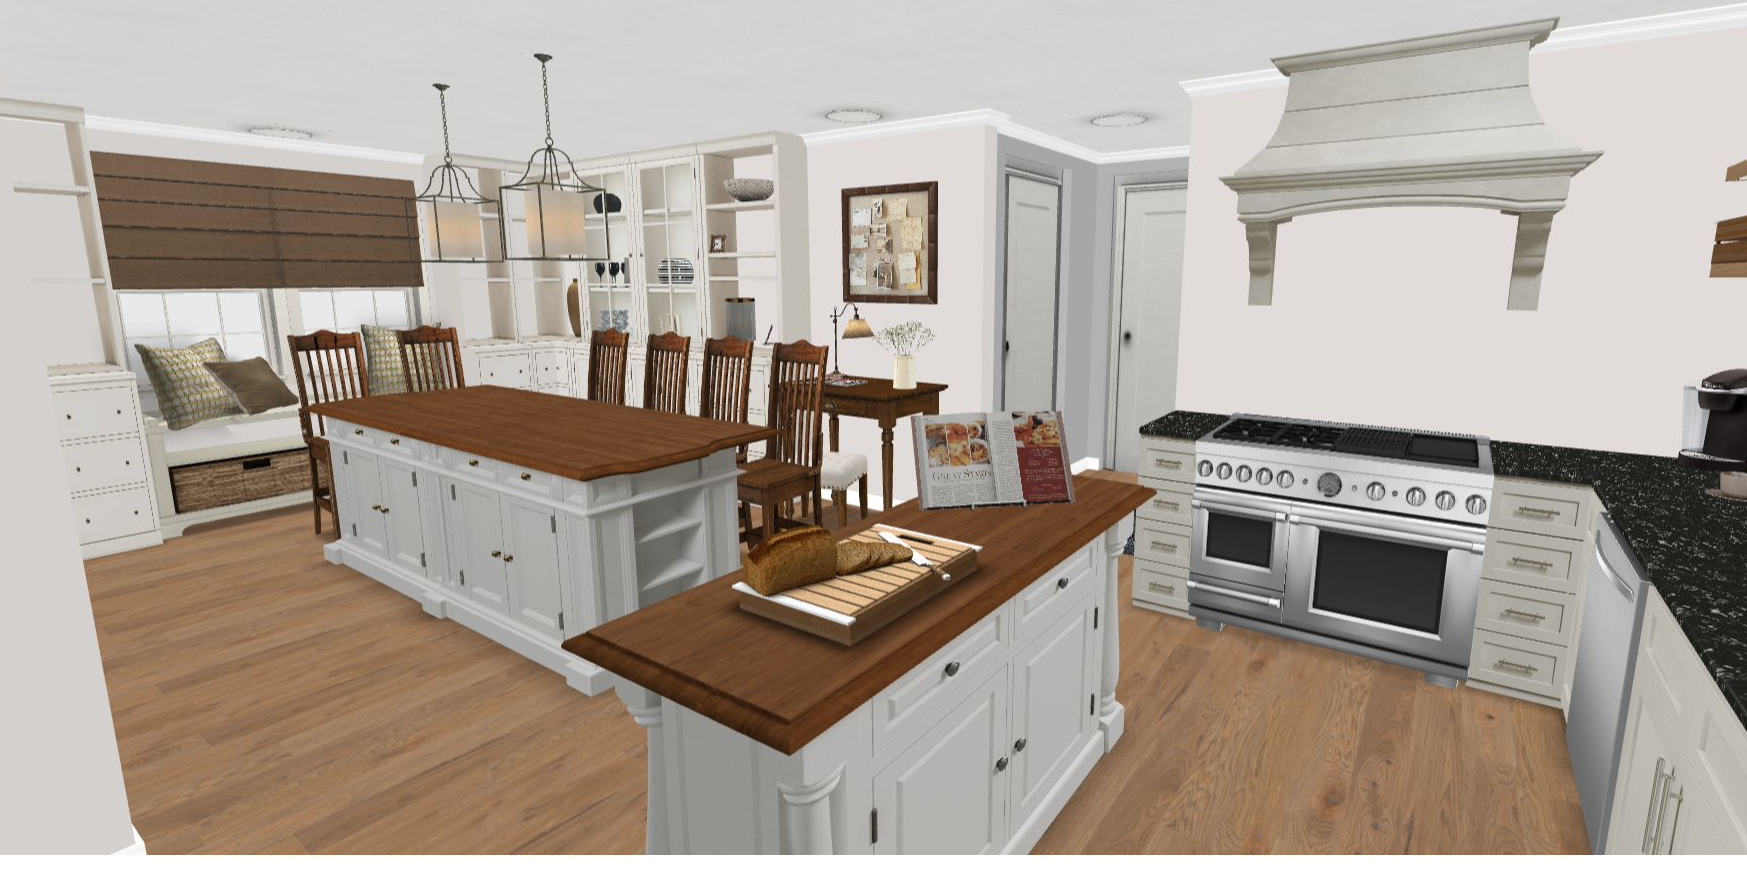 Doyle Kitchen - Full View.png